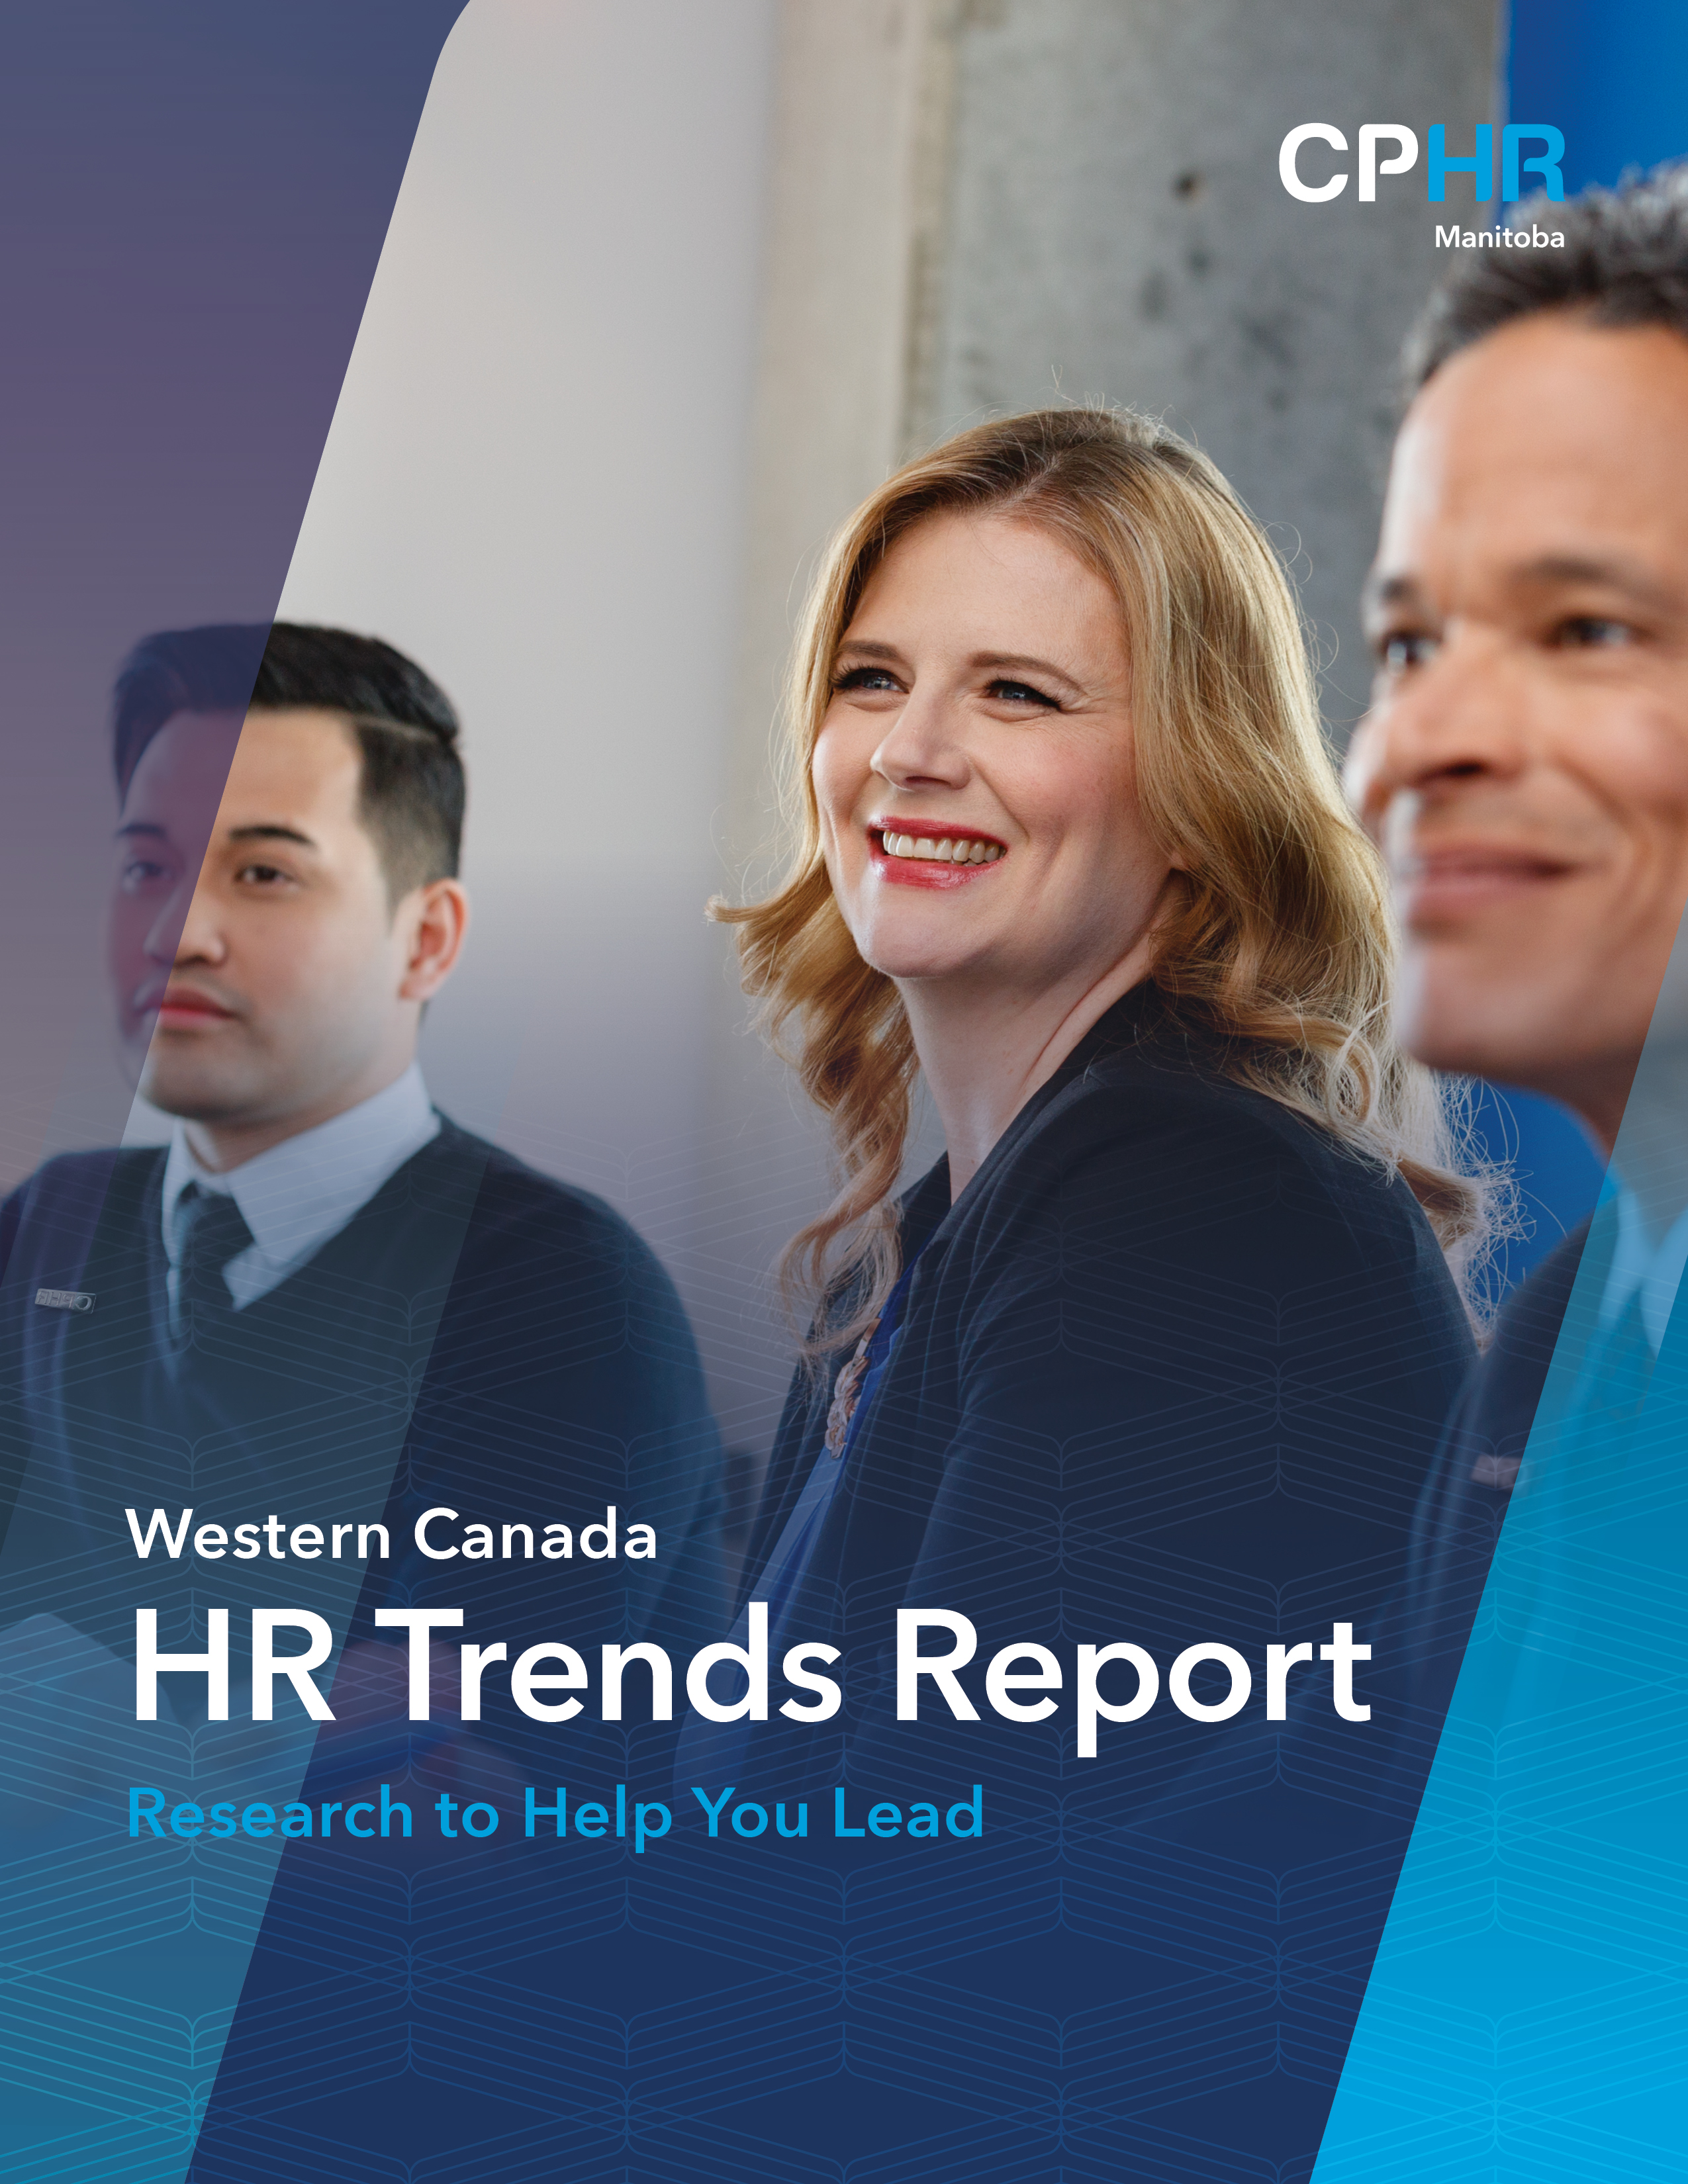 HR Trends Report - CPHR Manitoba